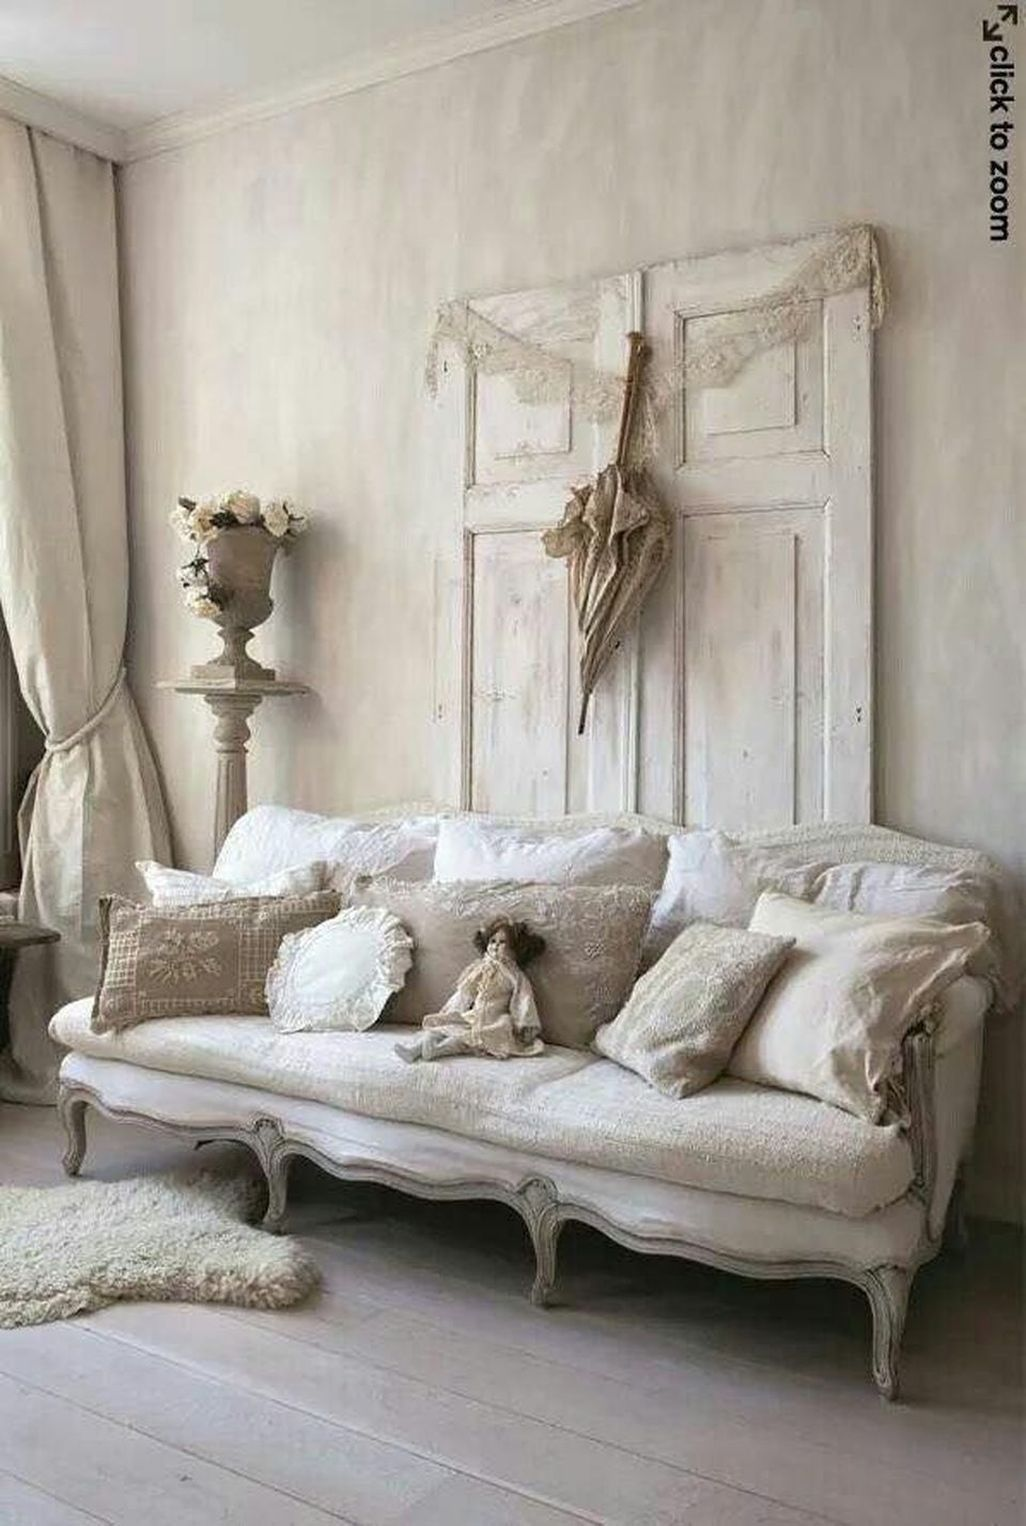 40 Inspiring And Romantic Living Room Decorating Ideas Shabby Chic Interiors Shabby Chic Room Shabby Chic Bedrooms